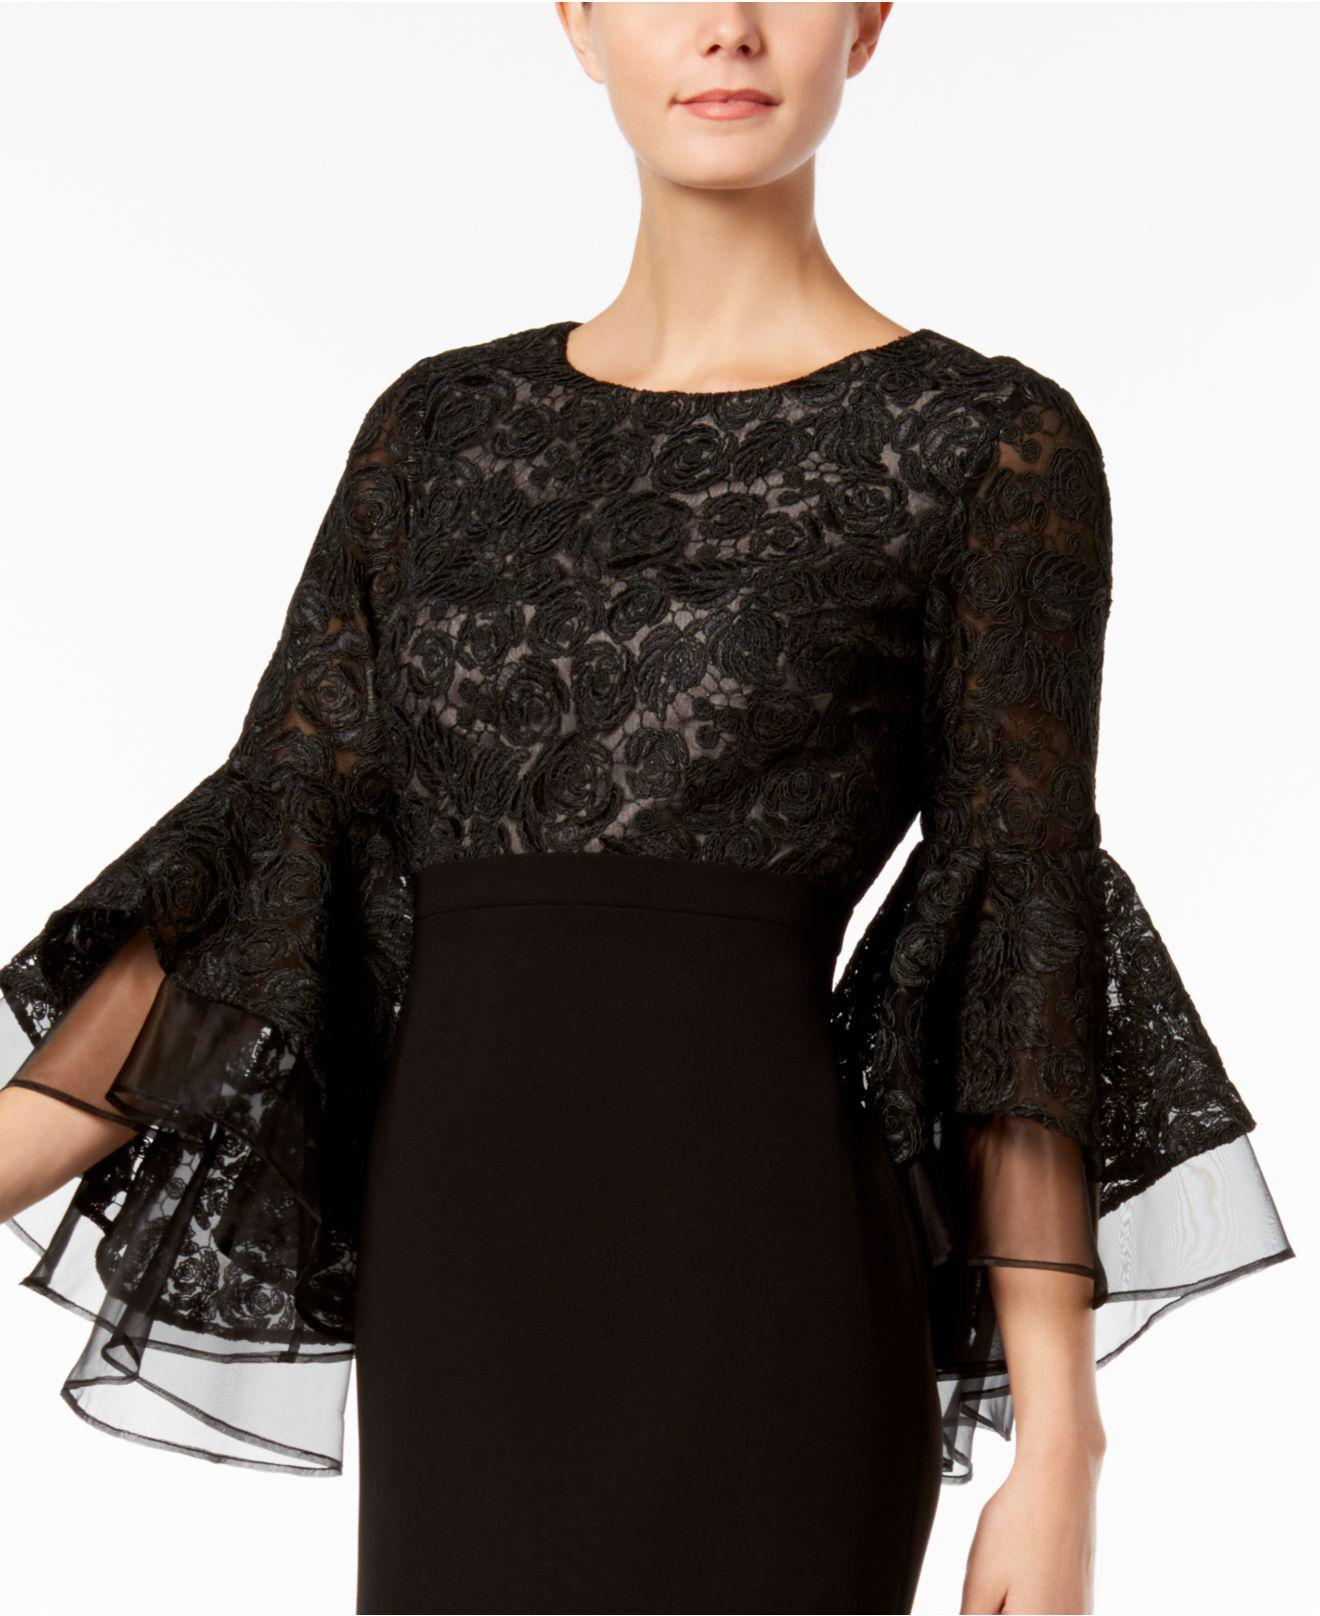 a7ee2e983eb Gallery. Previously sold at  Macy s · Women s Black Lace Cocktail Dresses